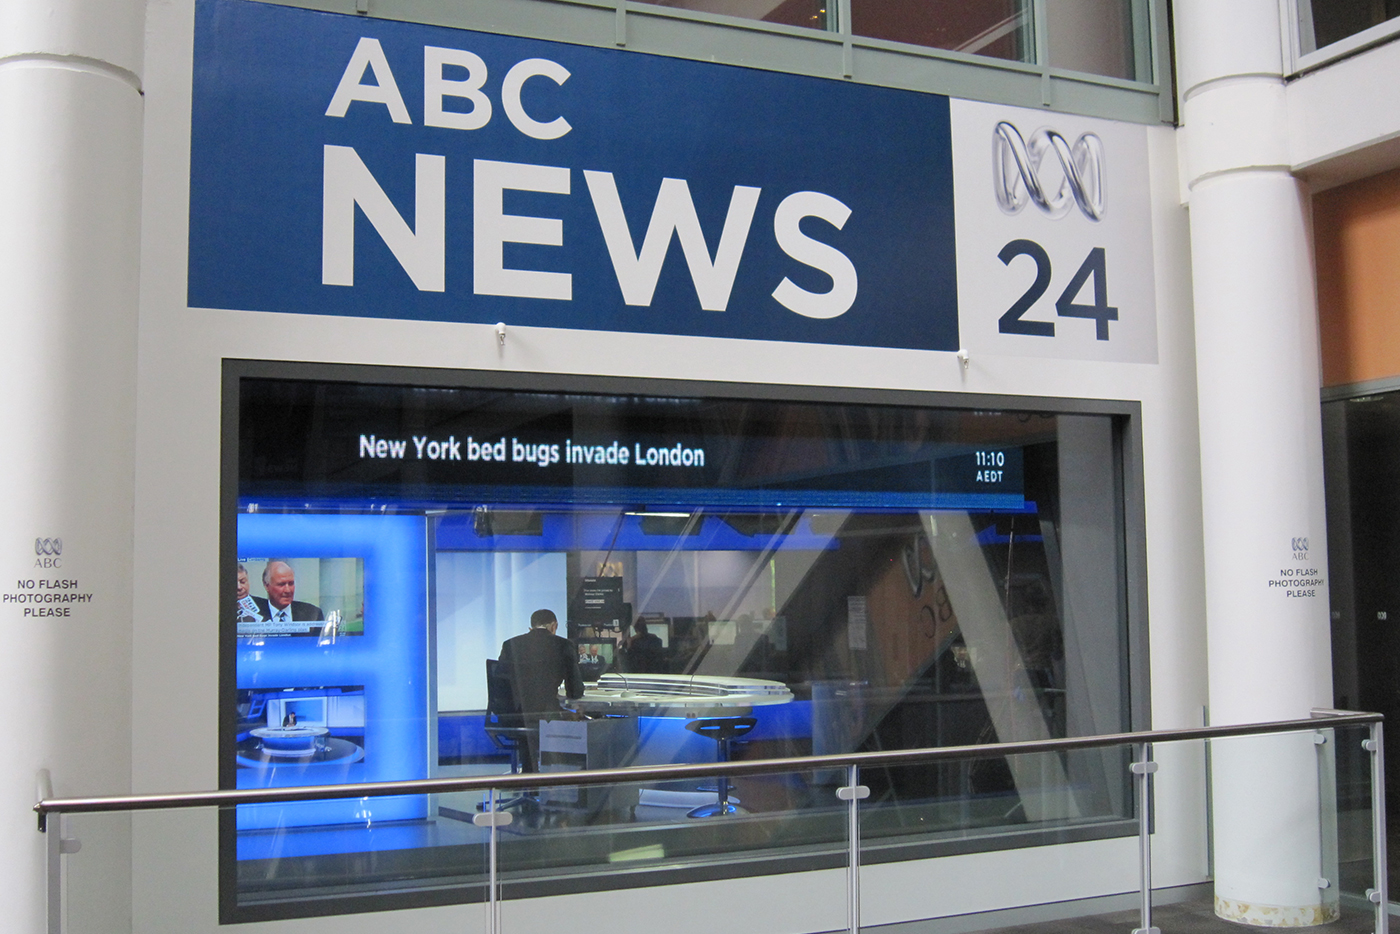 ABC News 24 Studio LED Screens and Studio Lighting